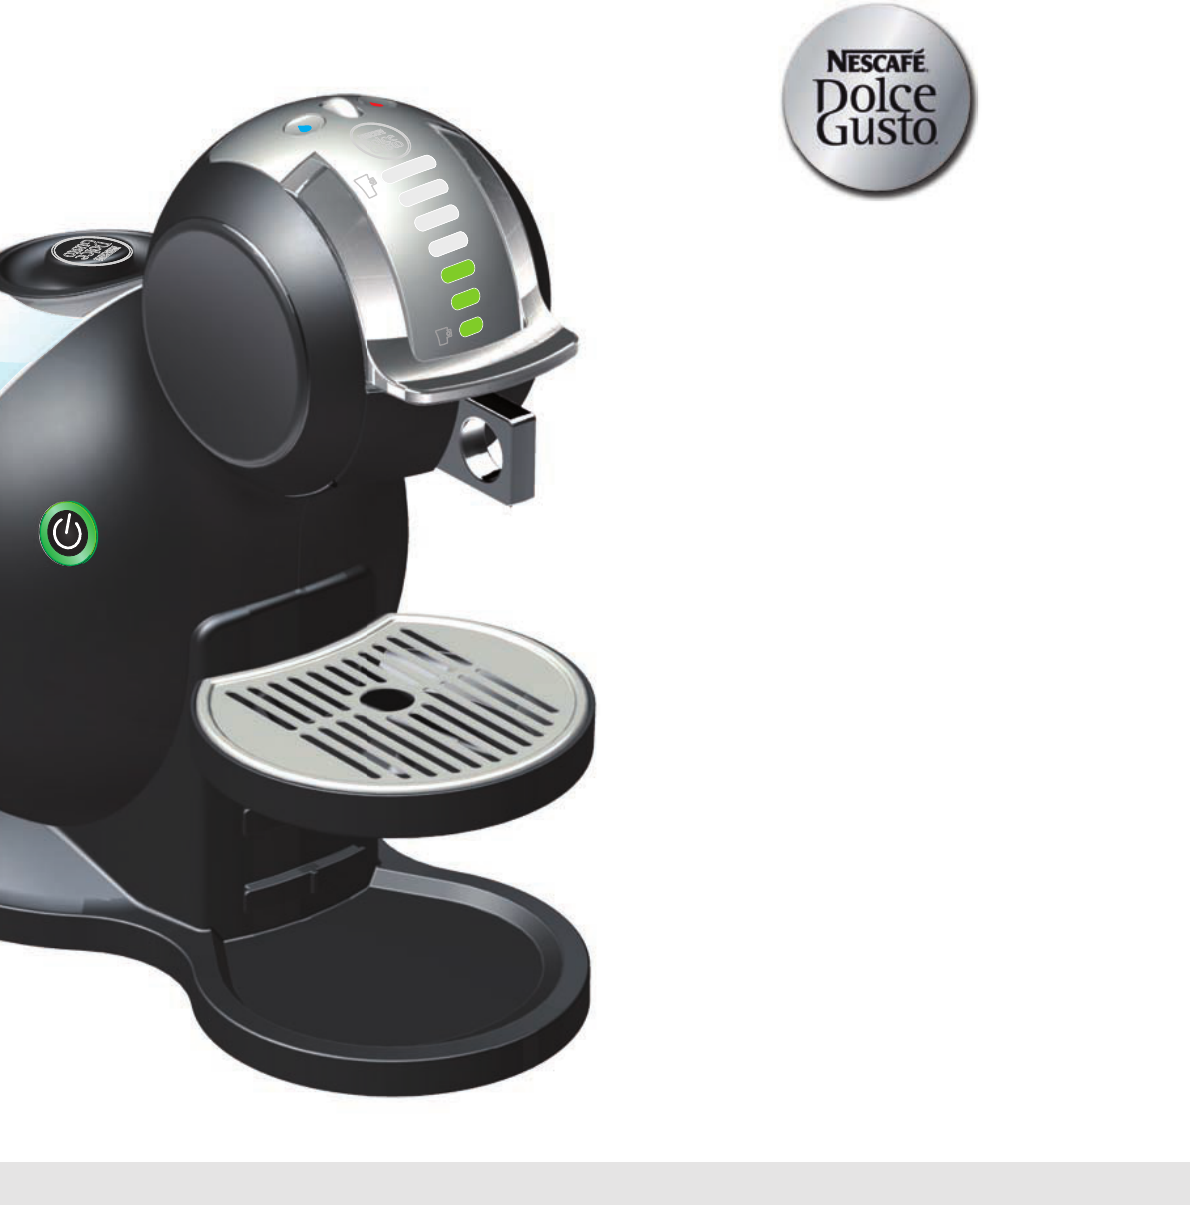 handleiding krups dolce gusto melody 3 automatic pagina 1 van 17 nederlands. Black Bedroom Furniture Sets. Home Design Ideas